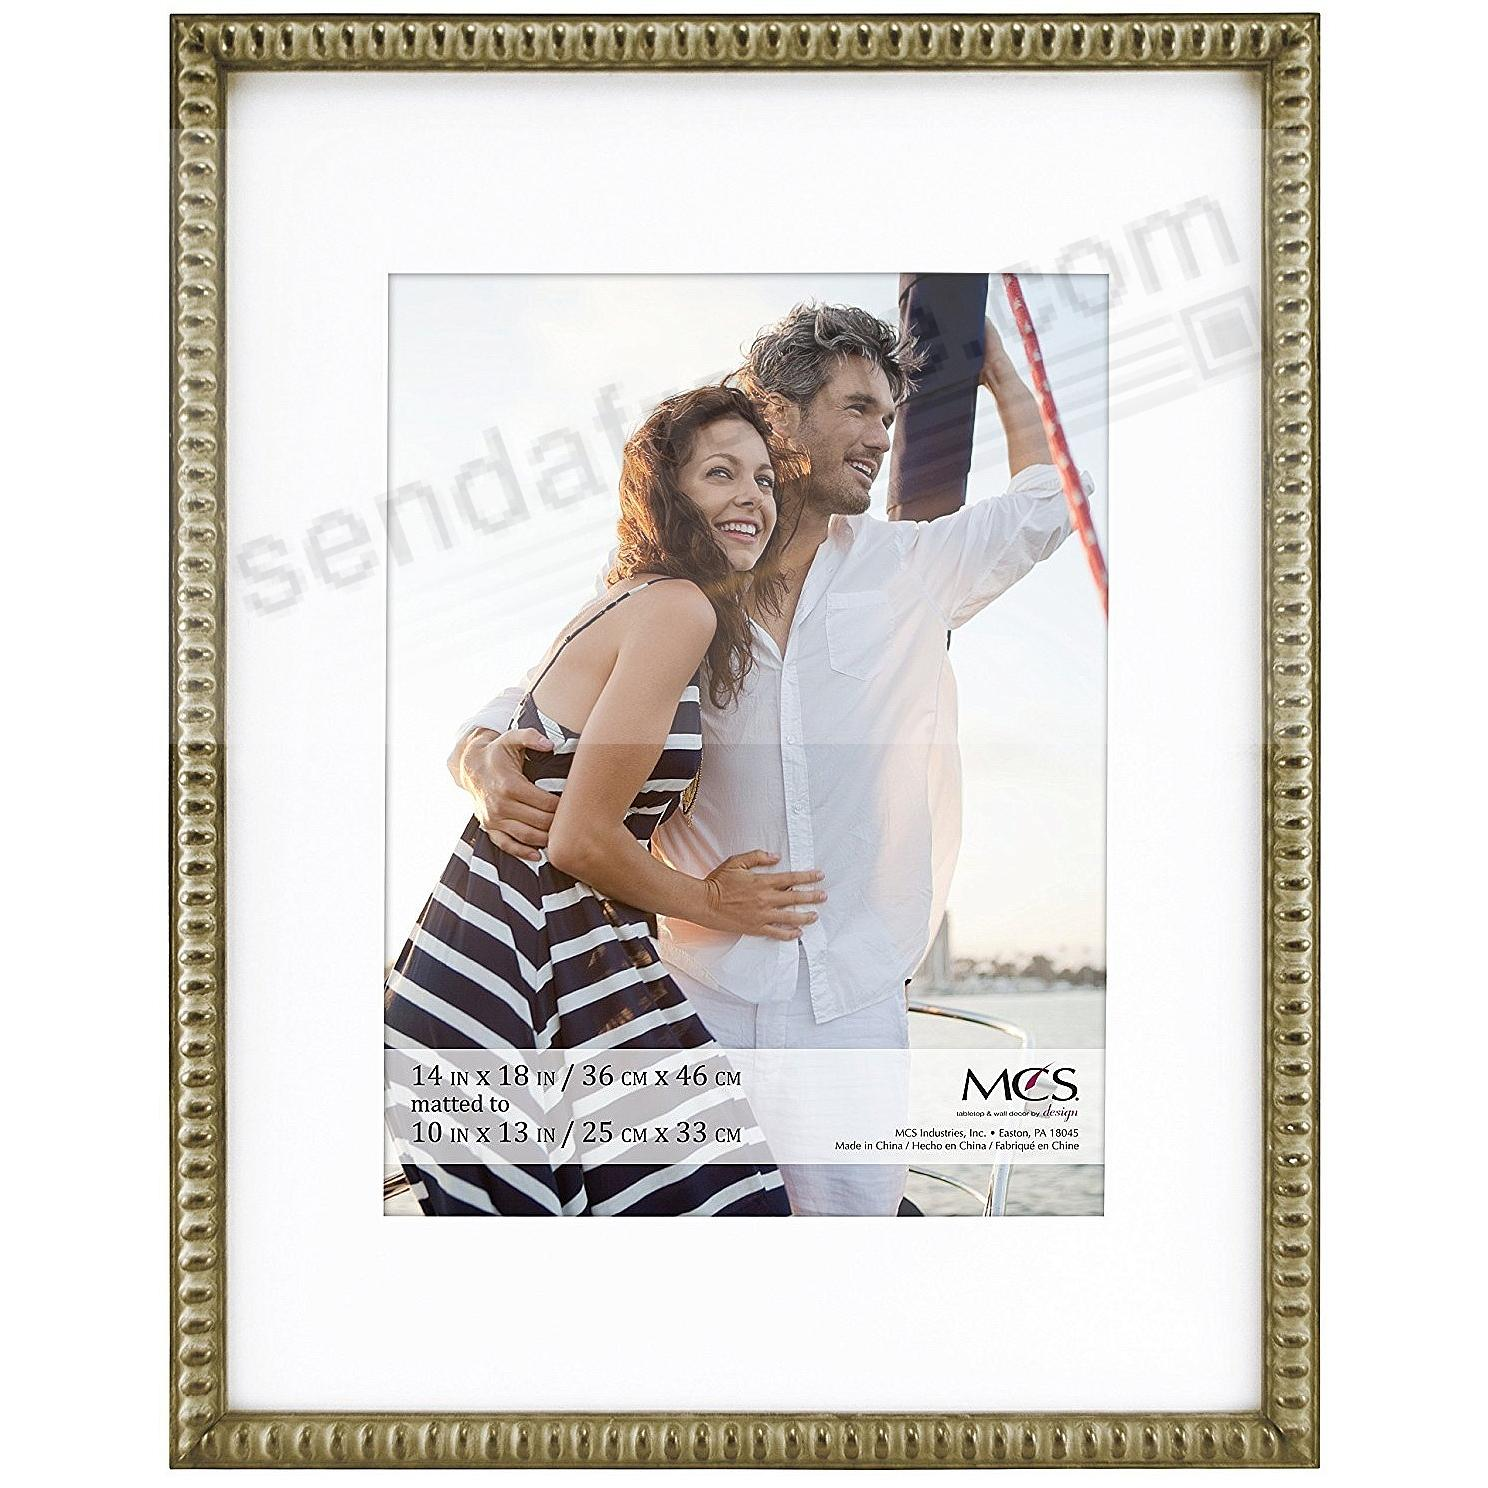 THIN BEAD Wood Champagne frame 16x20/11x14 by MCS®